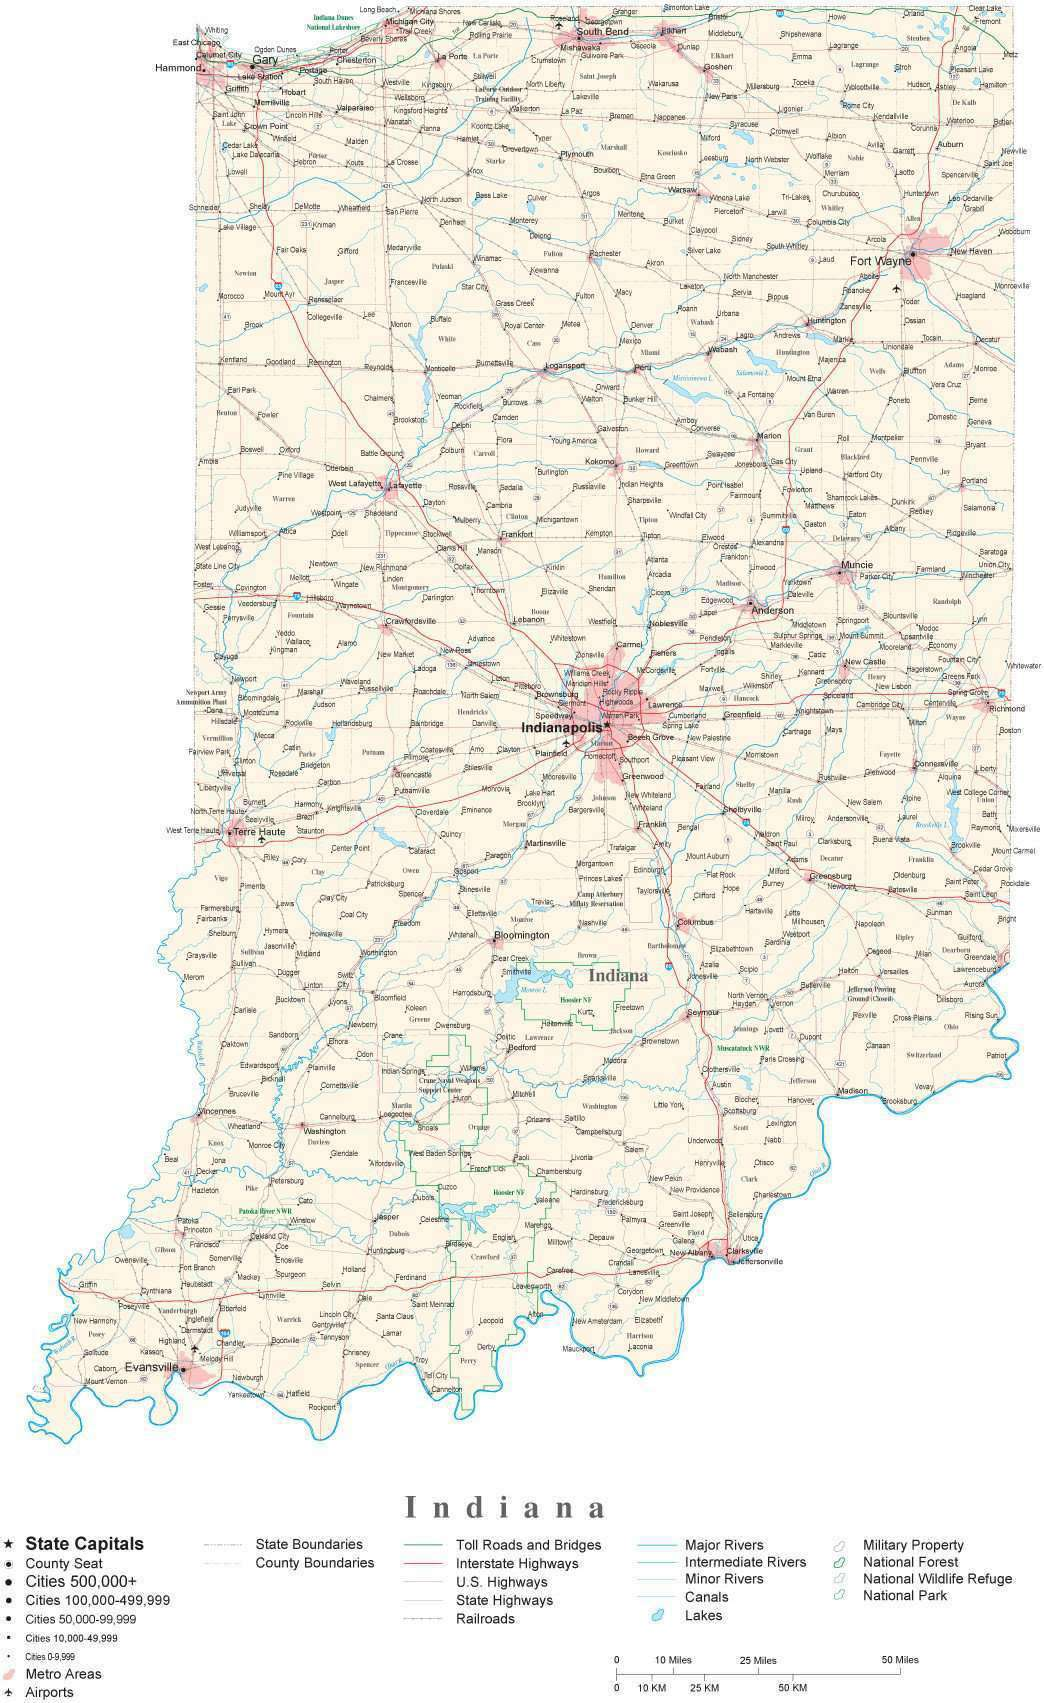 Indiana Map With Counties And Cities Indiana Detailed Cut Out Style State Map in Adobe Illustrator